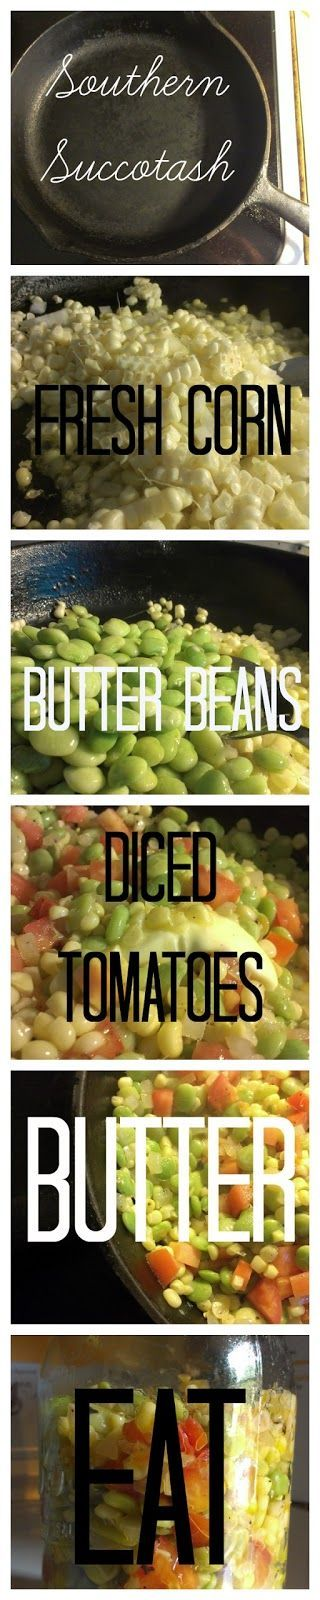 There may be debates about the topic but succotash is corn prepared with lima beans (or butter beans) and tomatoes are optional. All of this needs to be topped with lard or butter and then it's Southern. Add a cast-iron skillet and you have a recipe for success. Any other variation is merely mixed vegetables.